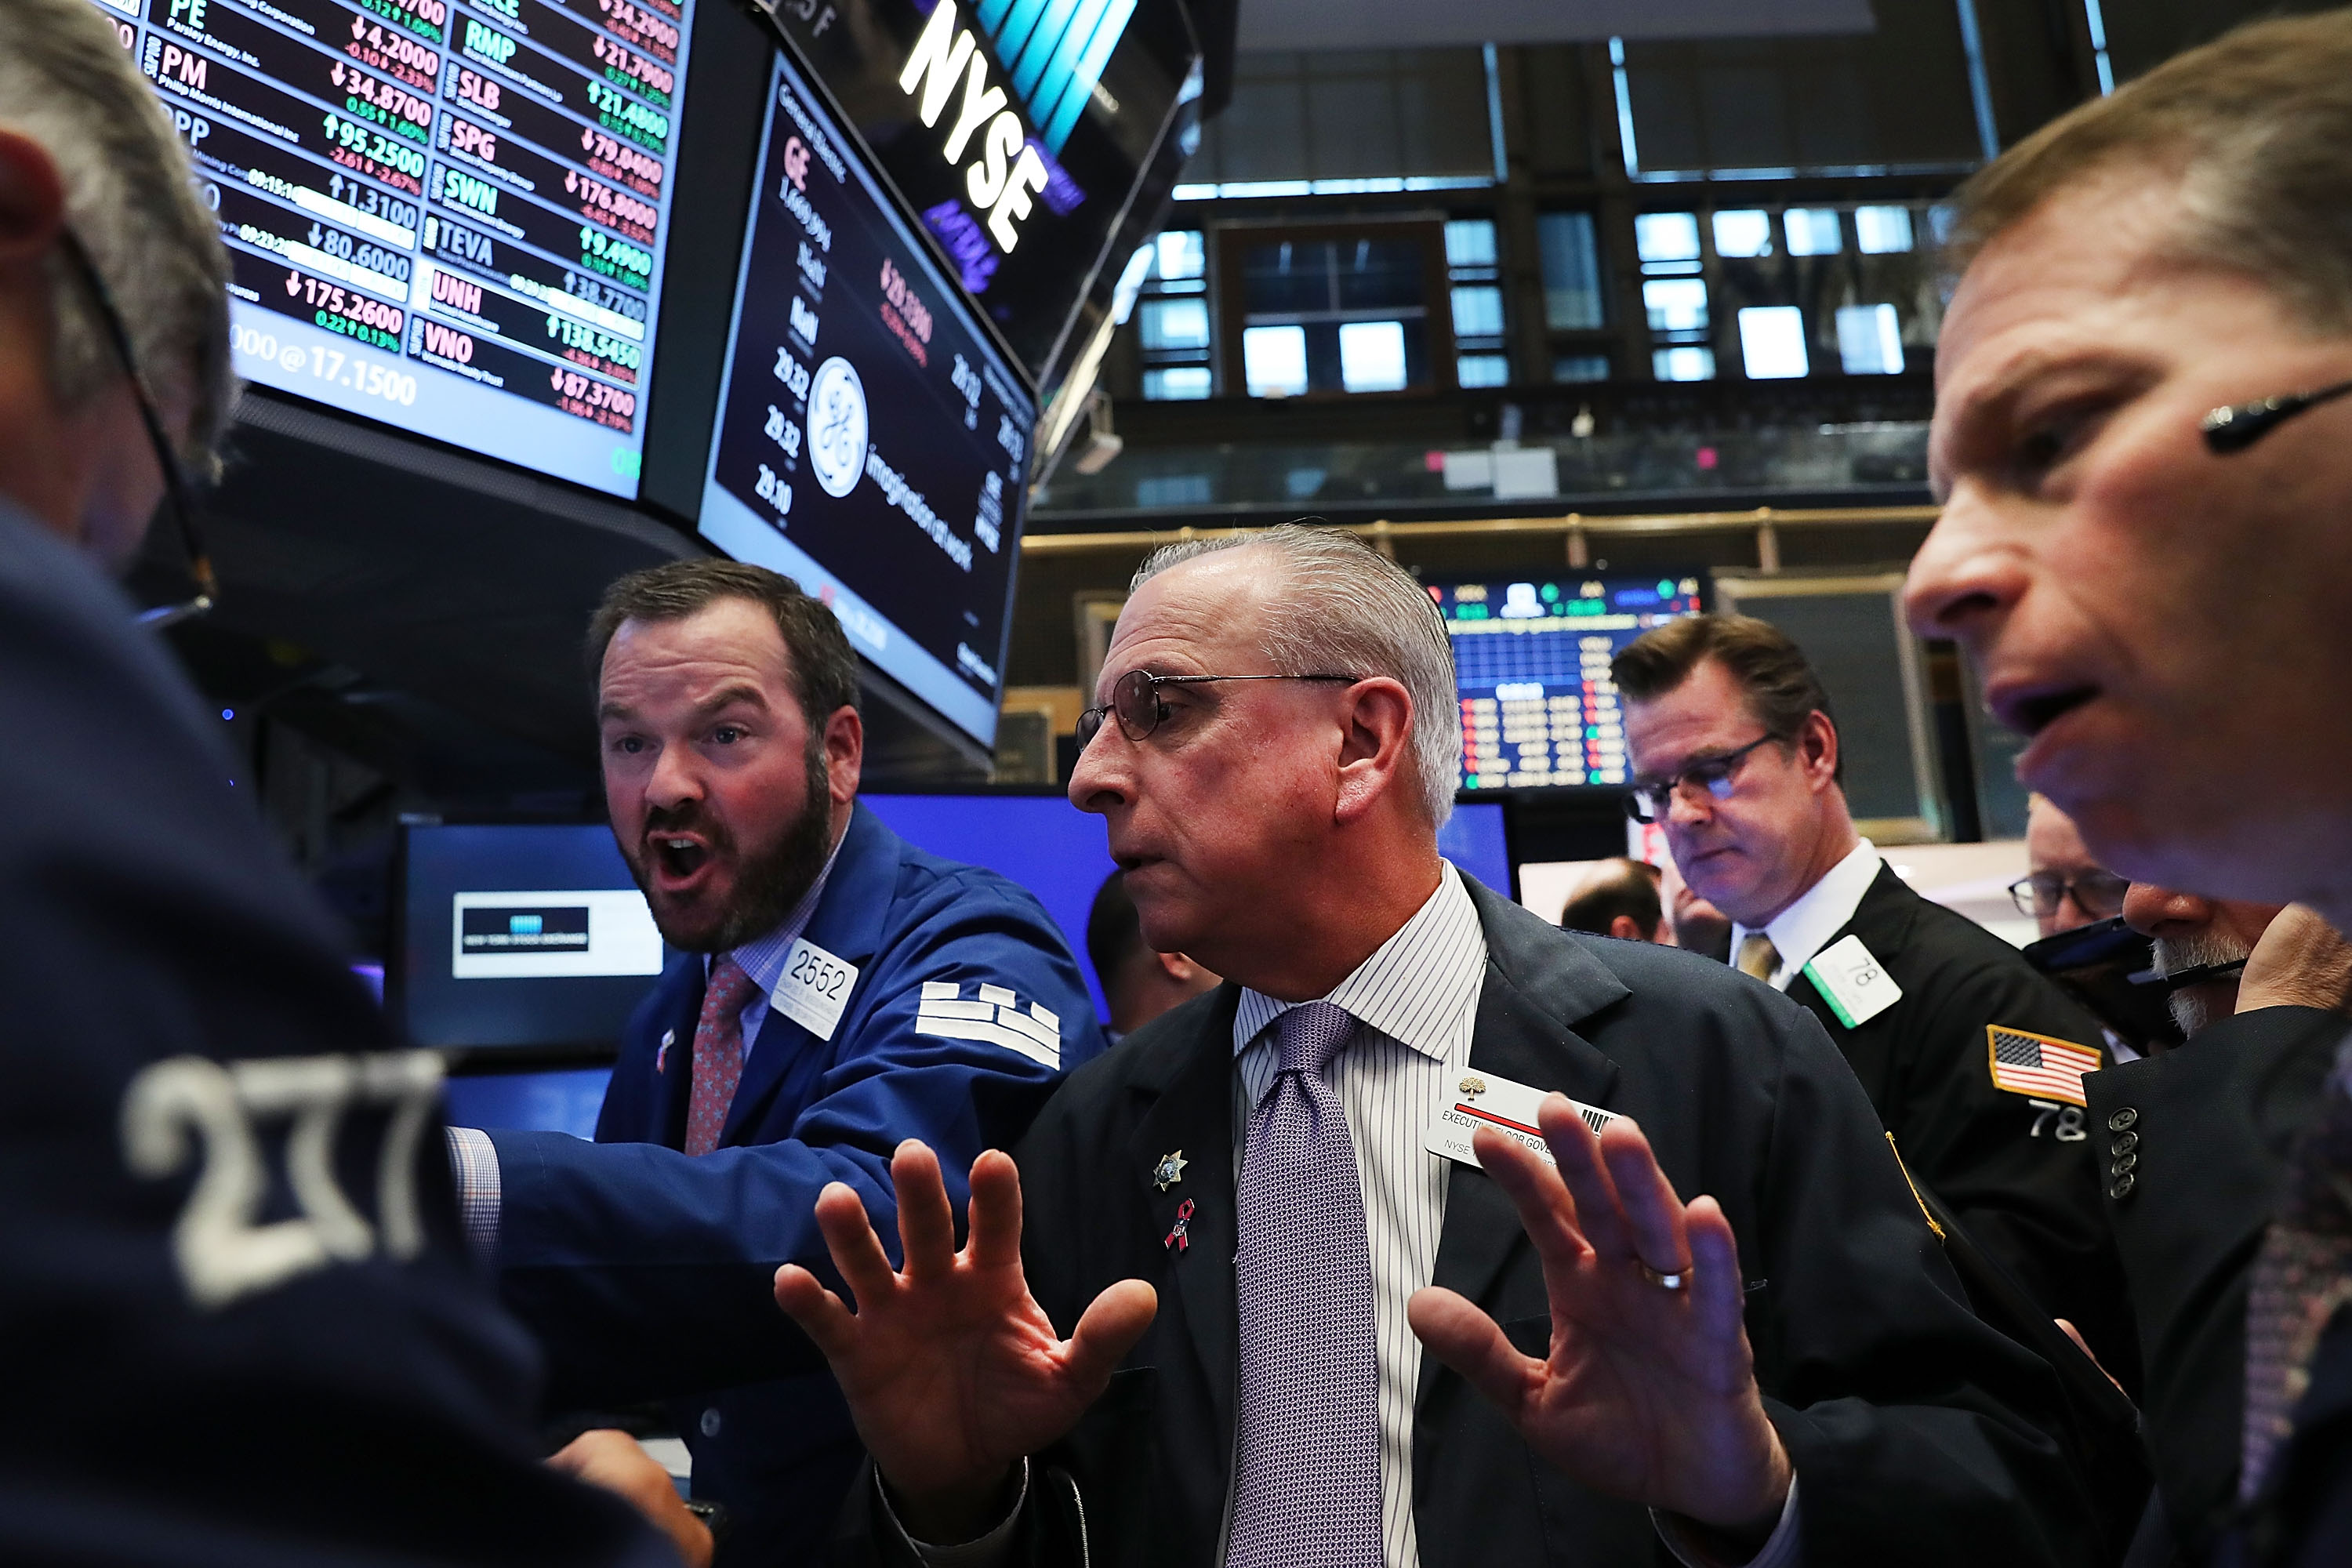 Traders work on the floor of the New York Stock Exchange (NYSE) the morning after Donald Trump won the presidential election on November 9, 2016.